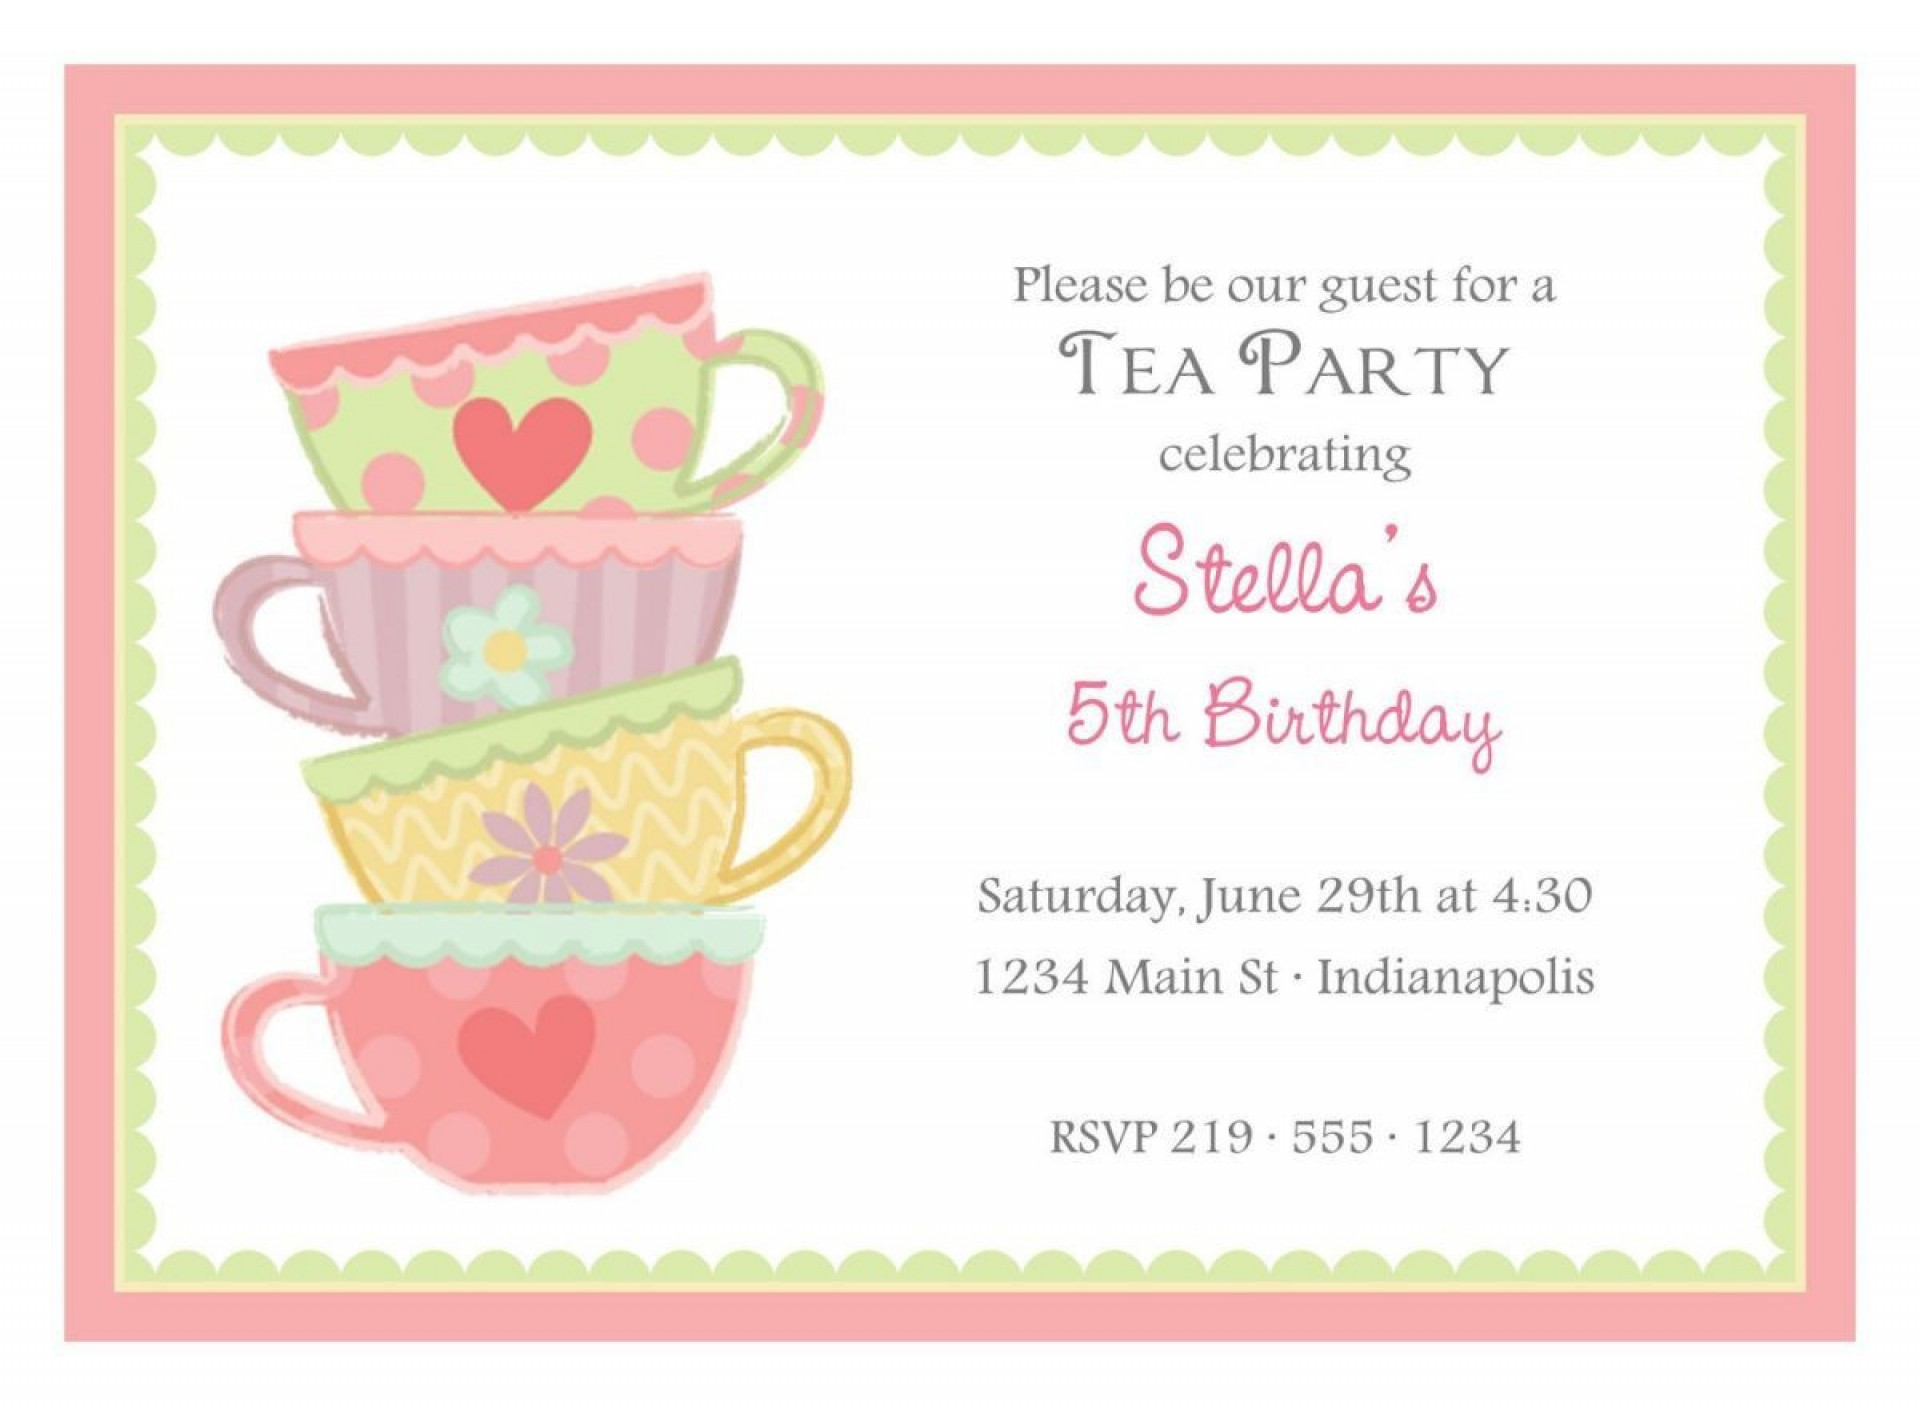 004 Dreaded Tea Party Invitation Template Free Example  Vintage Princes Printable1920